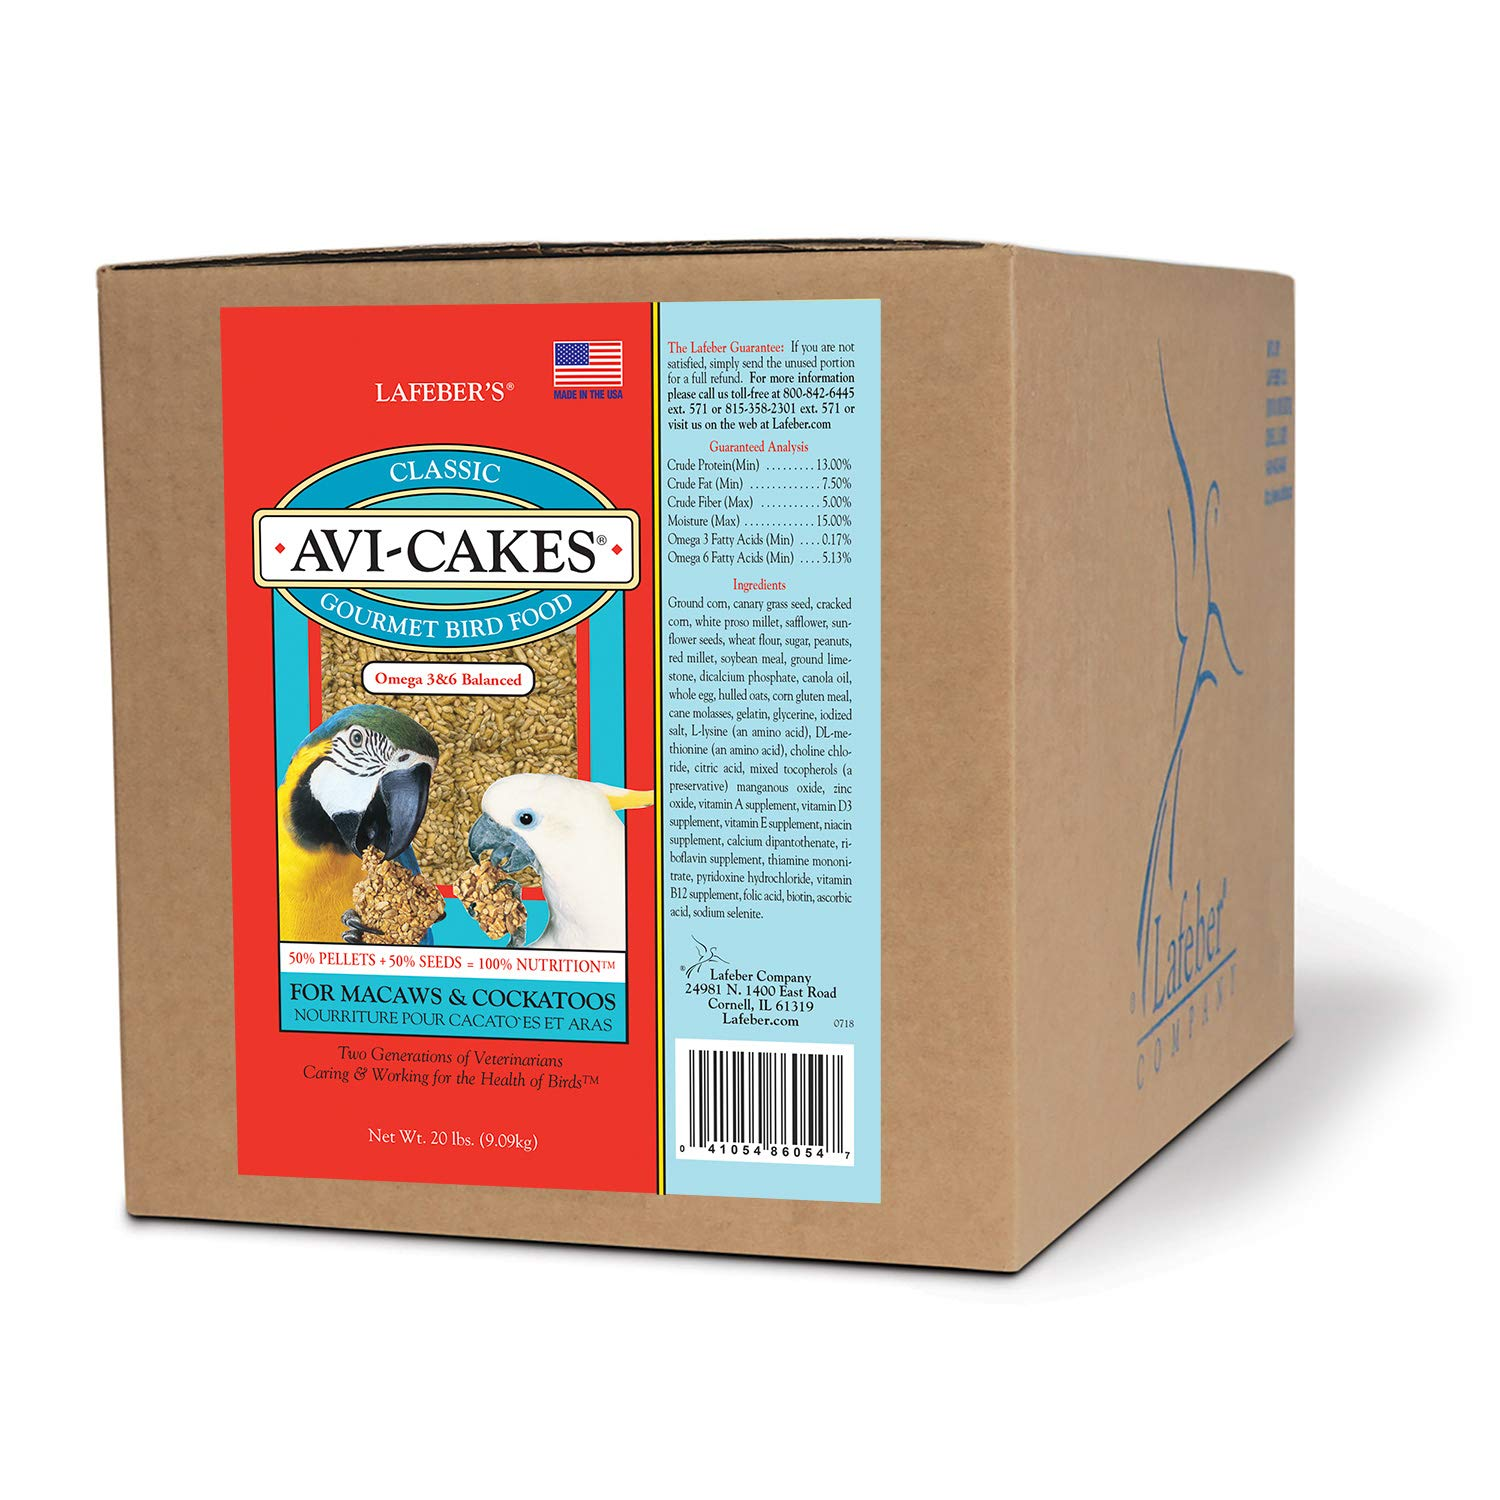 LAFEBER'S Classic Avi-Cakes Pet Bird Food, Made with Non-GMO and Human-Grade Ingredients, for Macaws & Cockatoos, 20 lbs by LAFEBER'S